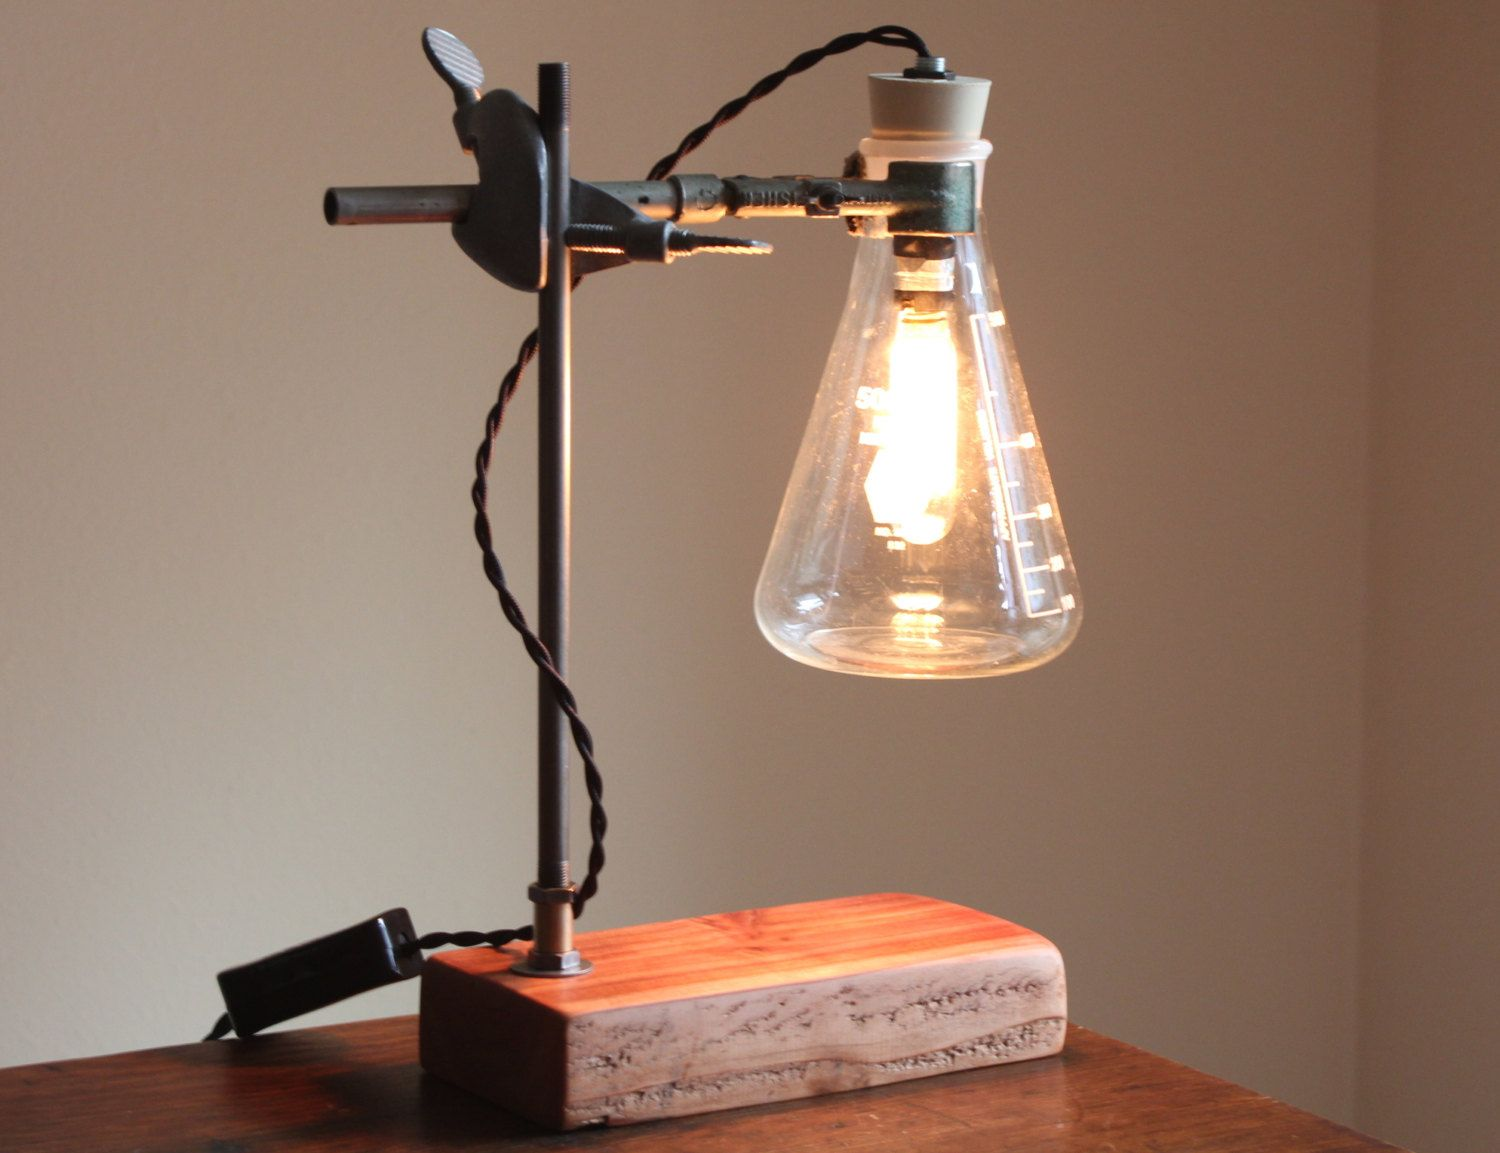 Cool Industrial Lamps Industrial Desk Lamp Science Steampunk Table Light Cool